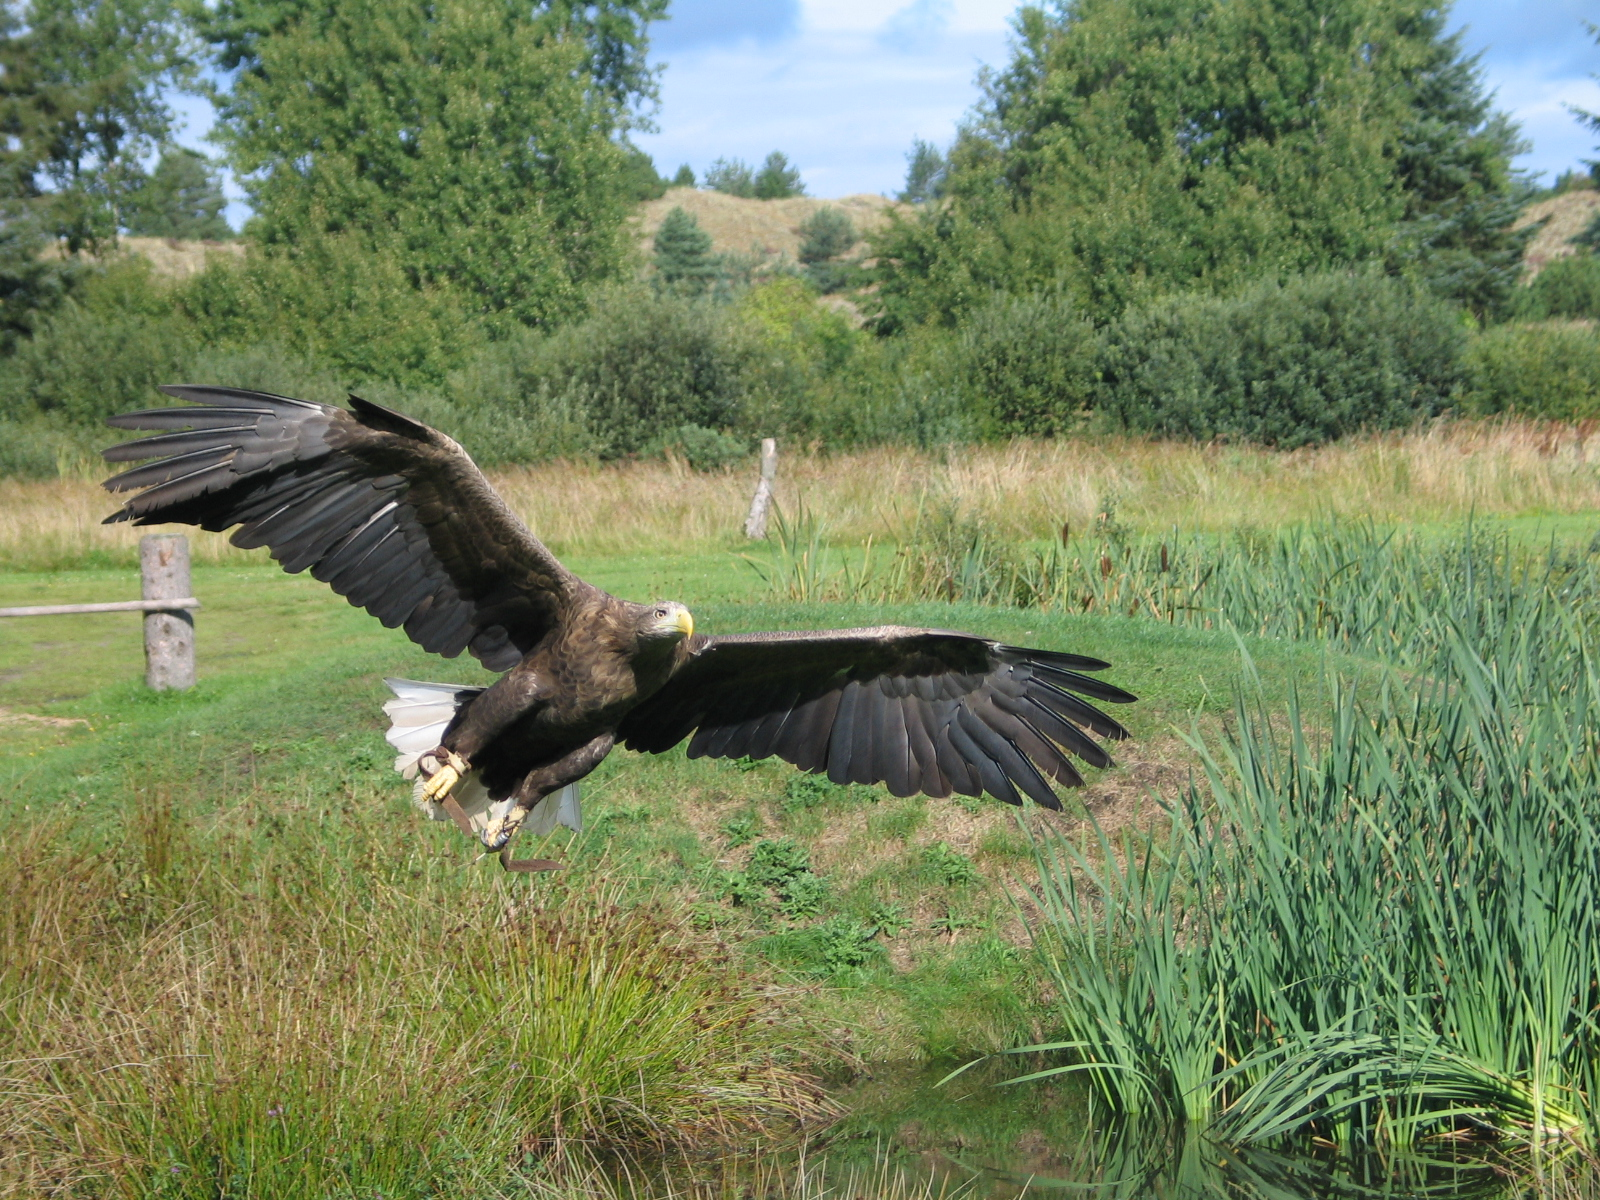 http://upload.wikimedia.org/wikipedia/commons/2/2e/Eagle_In_Flight_2004-09-01.jpeg